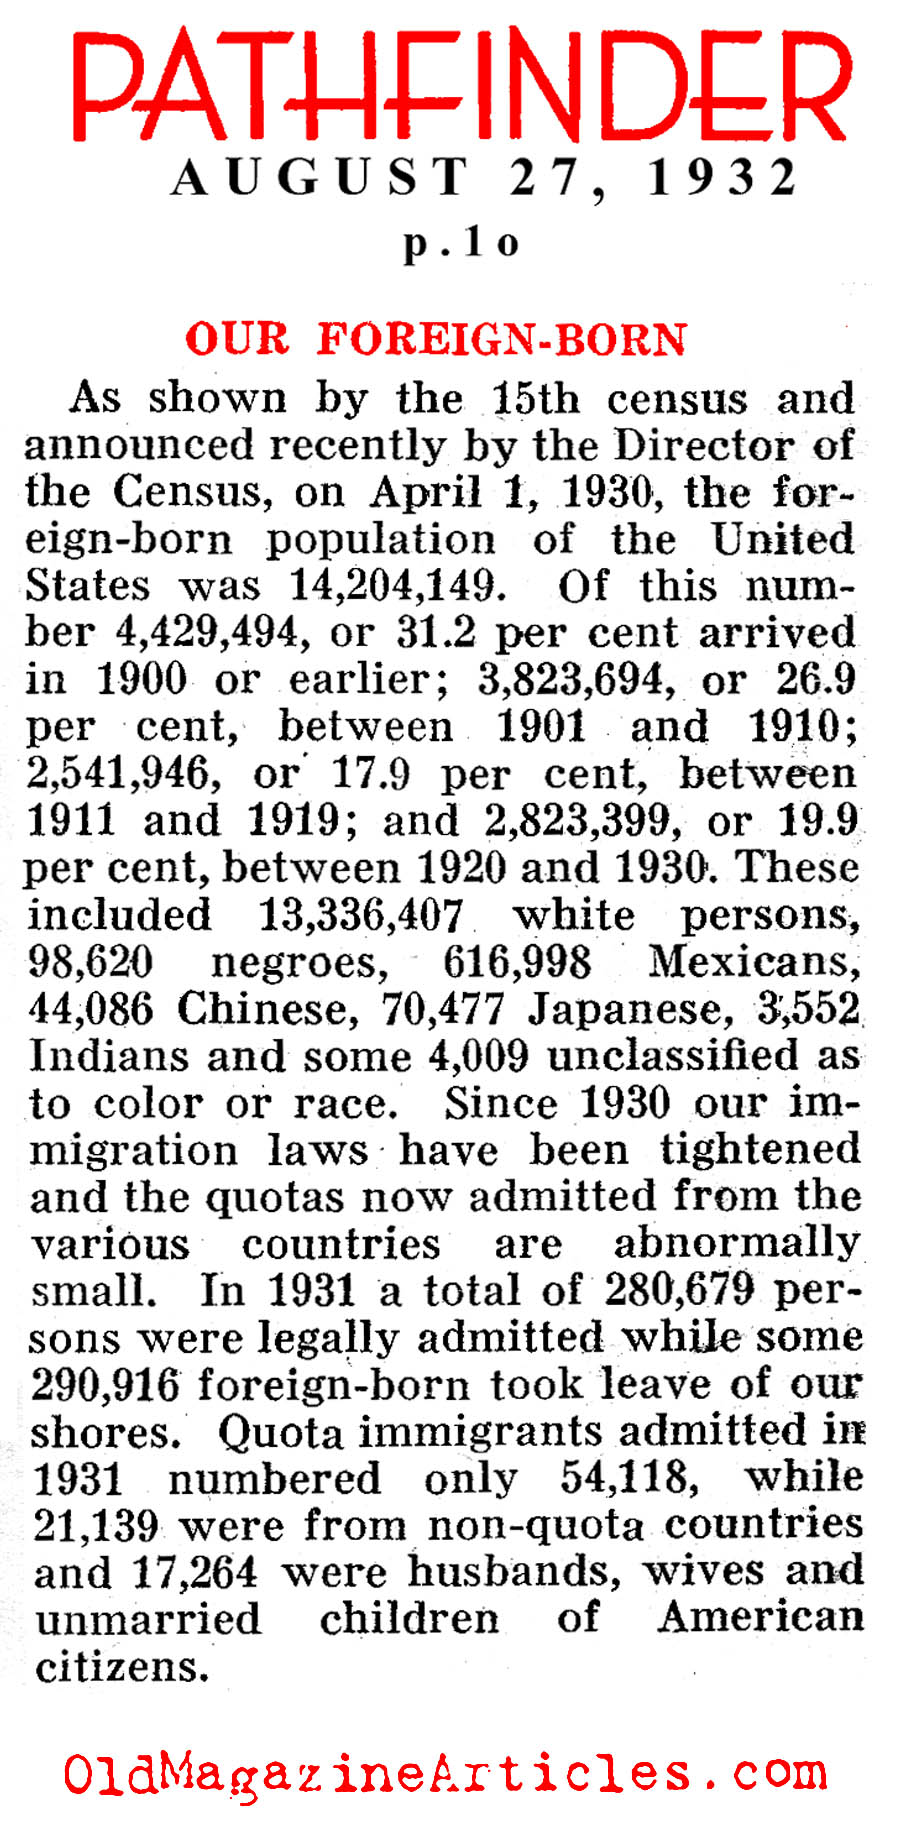 The Foreign-Born Population in the Early '30s (Pathfinder Magazine, 1932)